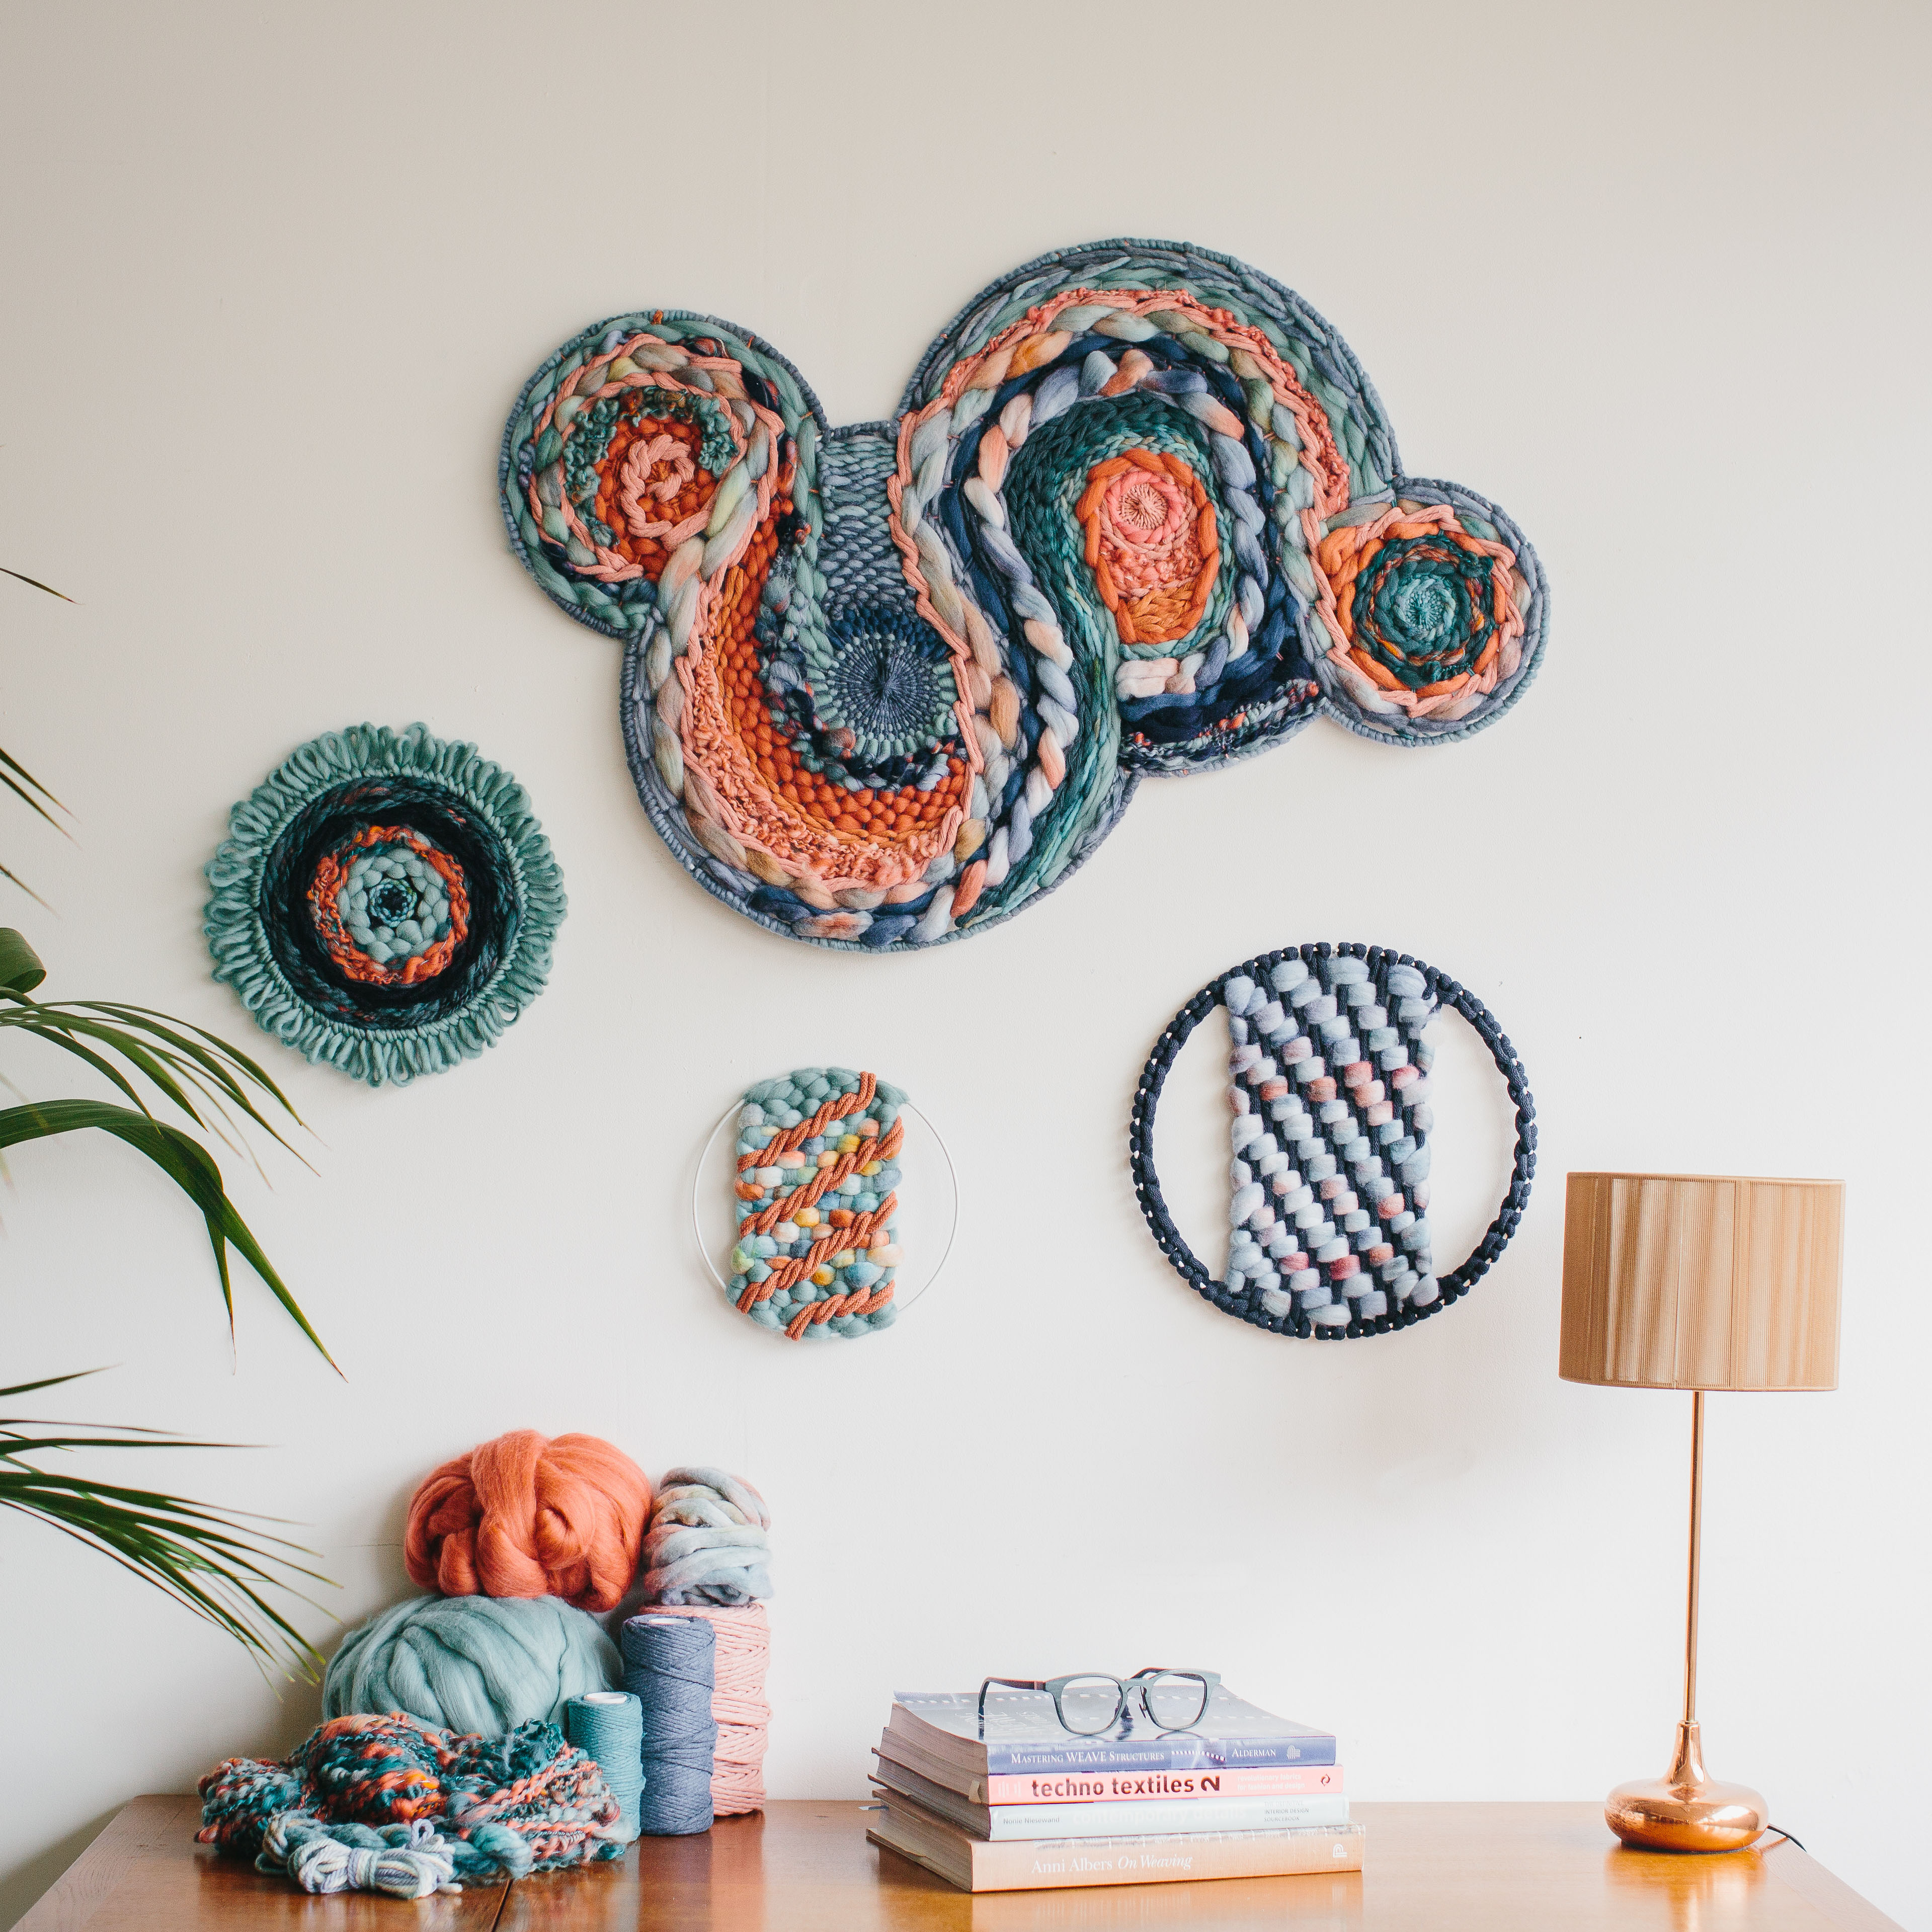 Cassandra Sabo's 'West Coast 8' woven circular textile wall-hanging from her West Coast Collection hung on the wall with multiple artworks